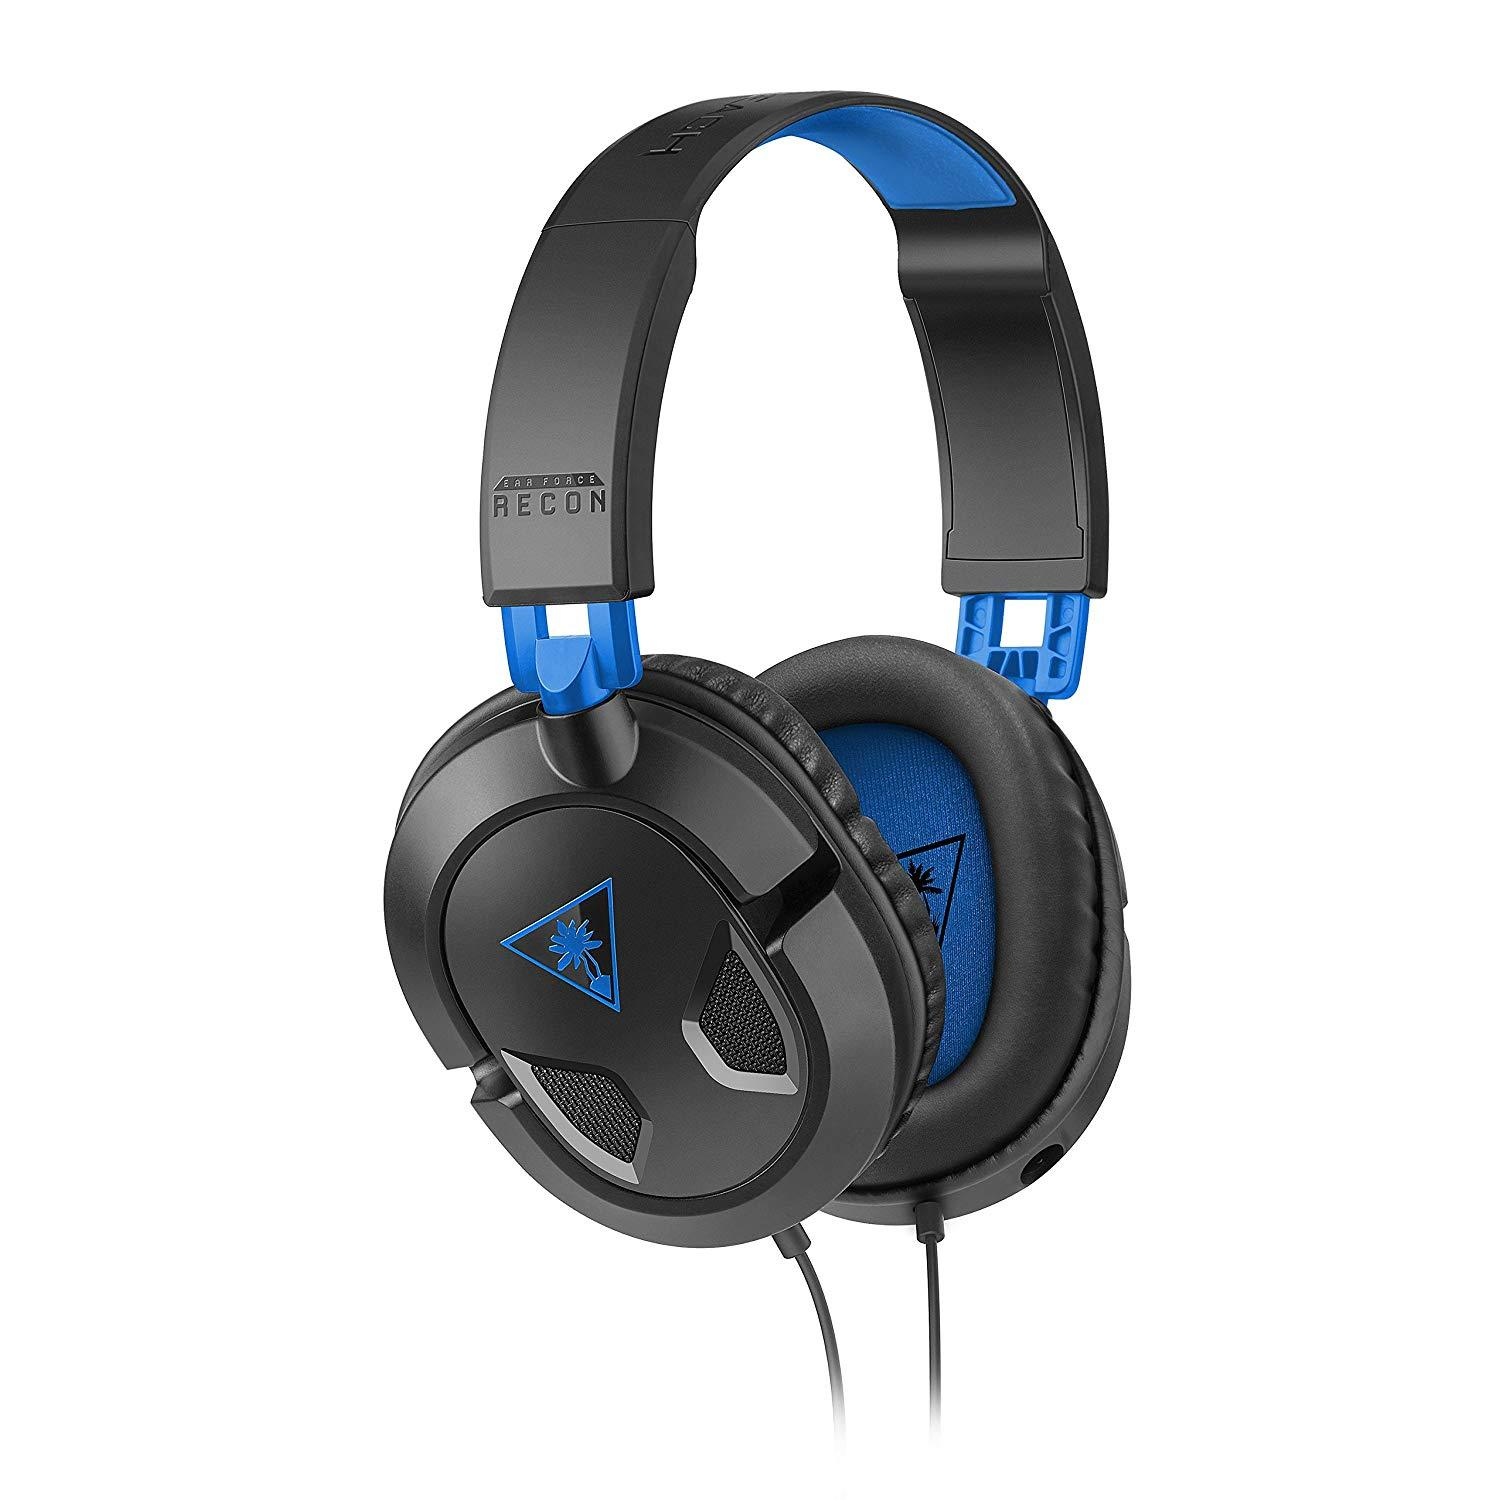 2ada873166d (Refurbished) Turtle Beach - Ear Force Recon 50p Stereo Gaming Headset -  Xbox One